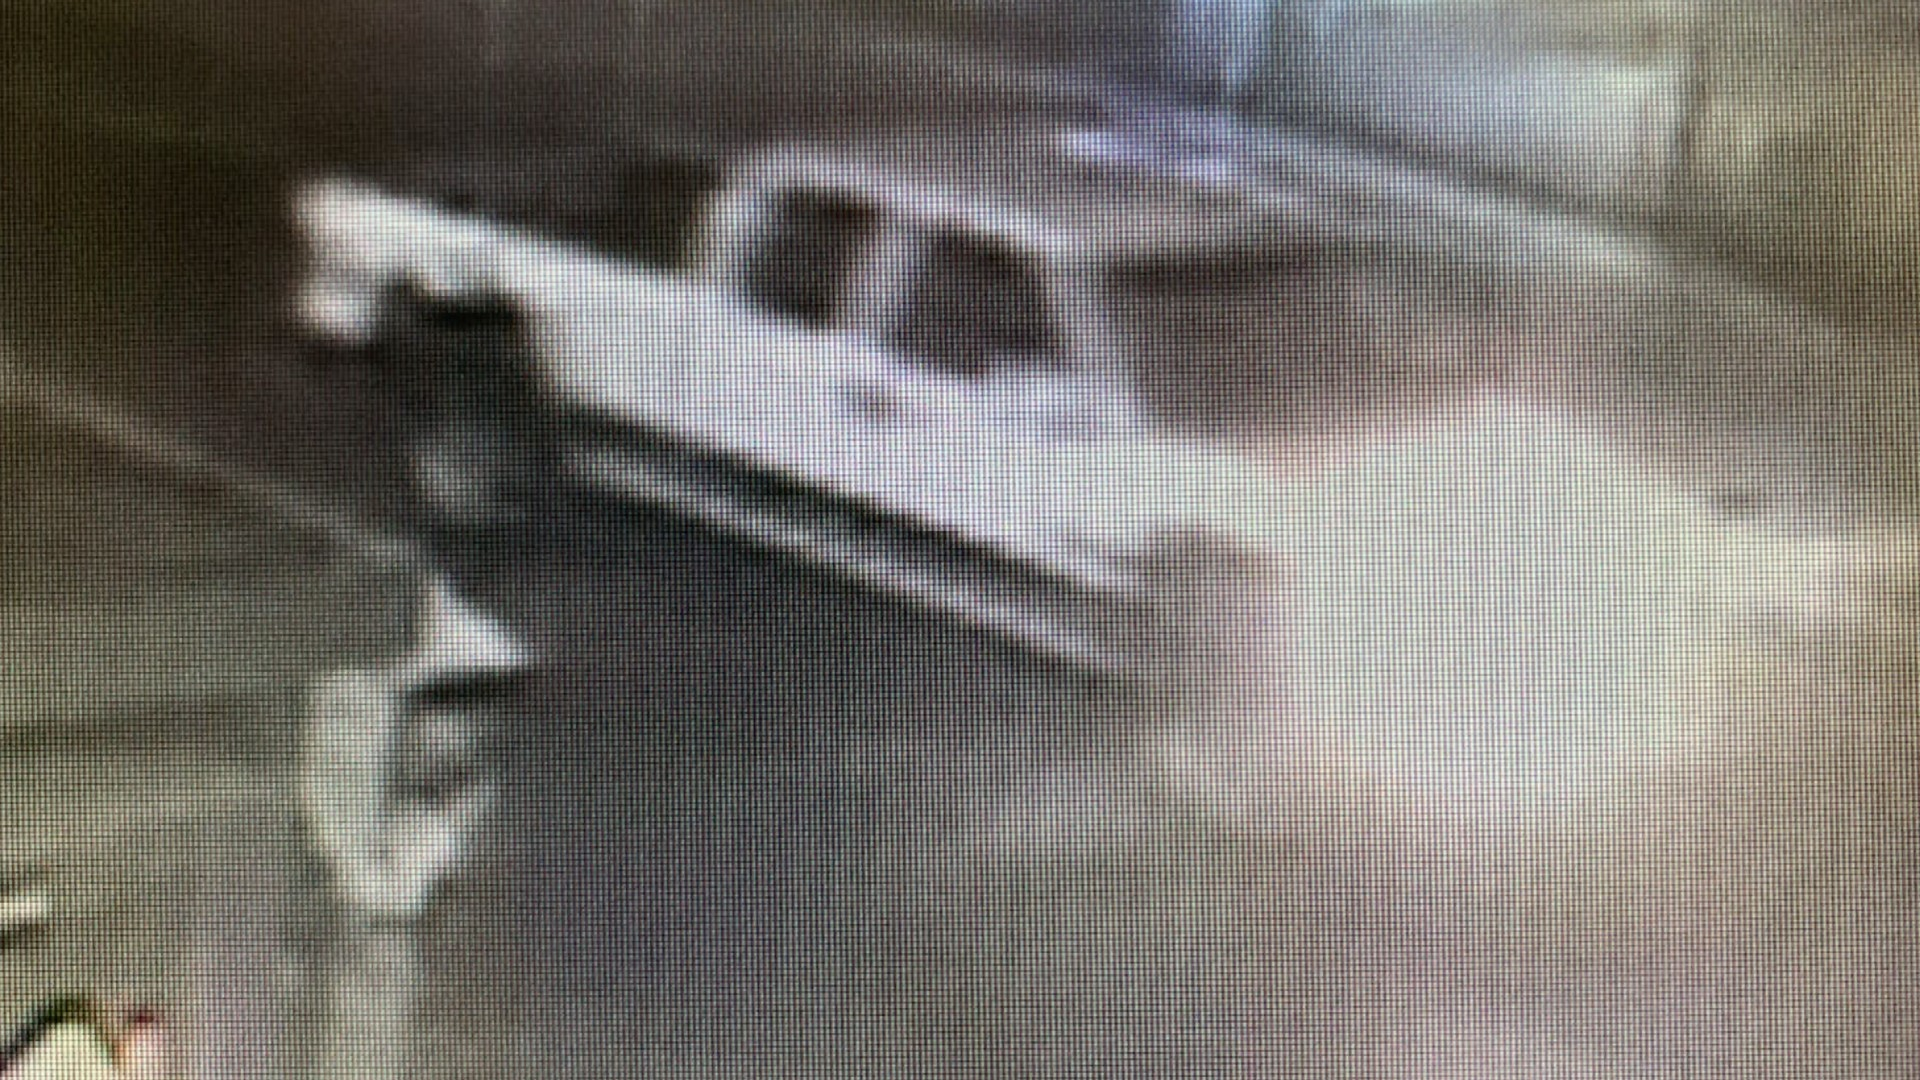 Los Angeles Police released this image of a white truck believed to be involved in a fatal hit-and-run crash in the Westlake neighborhood.